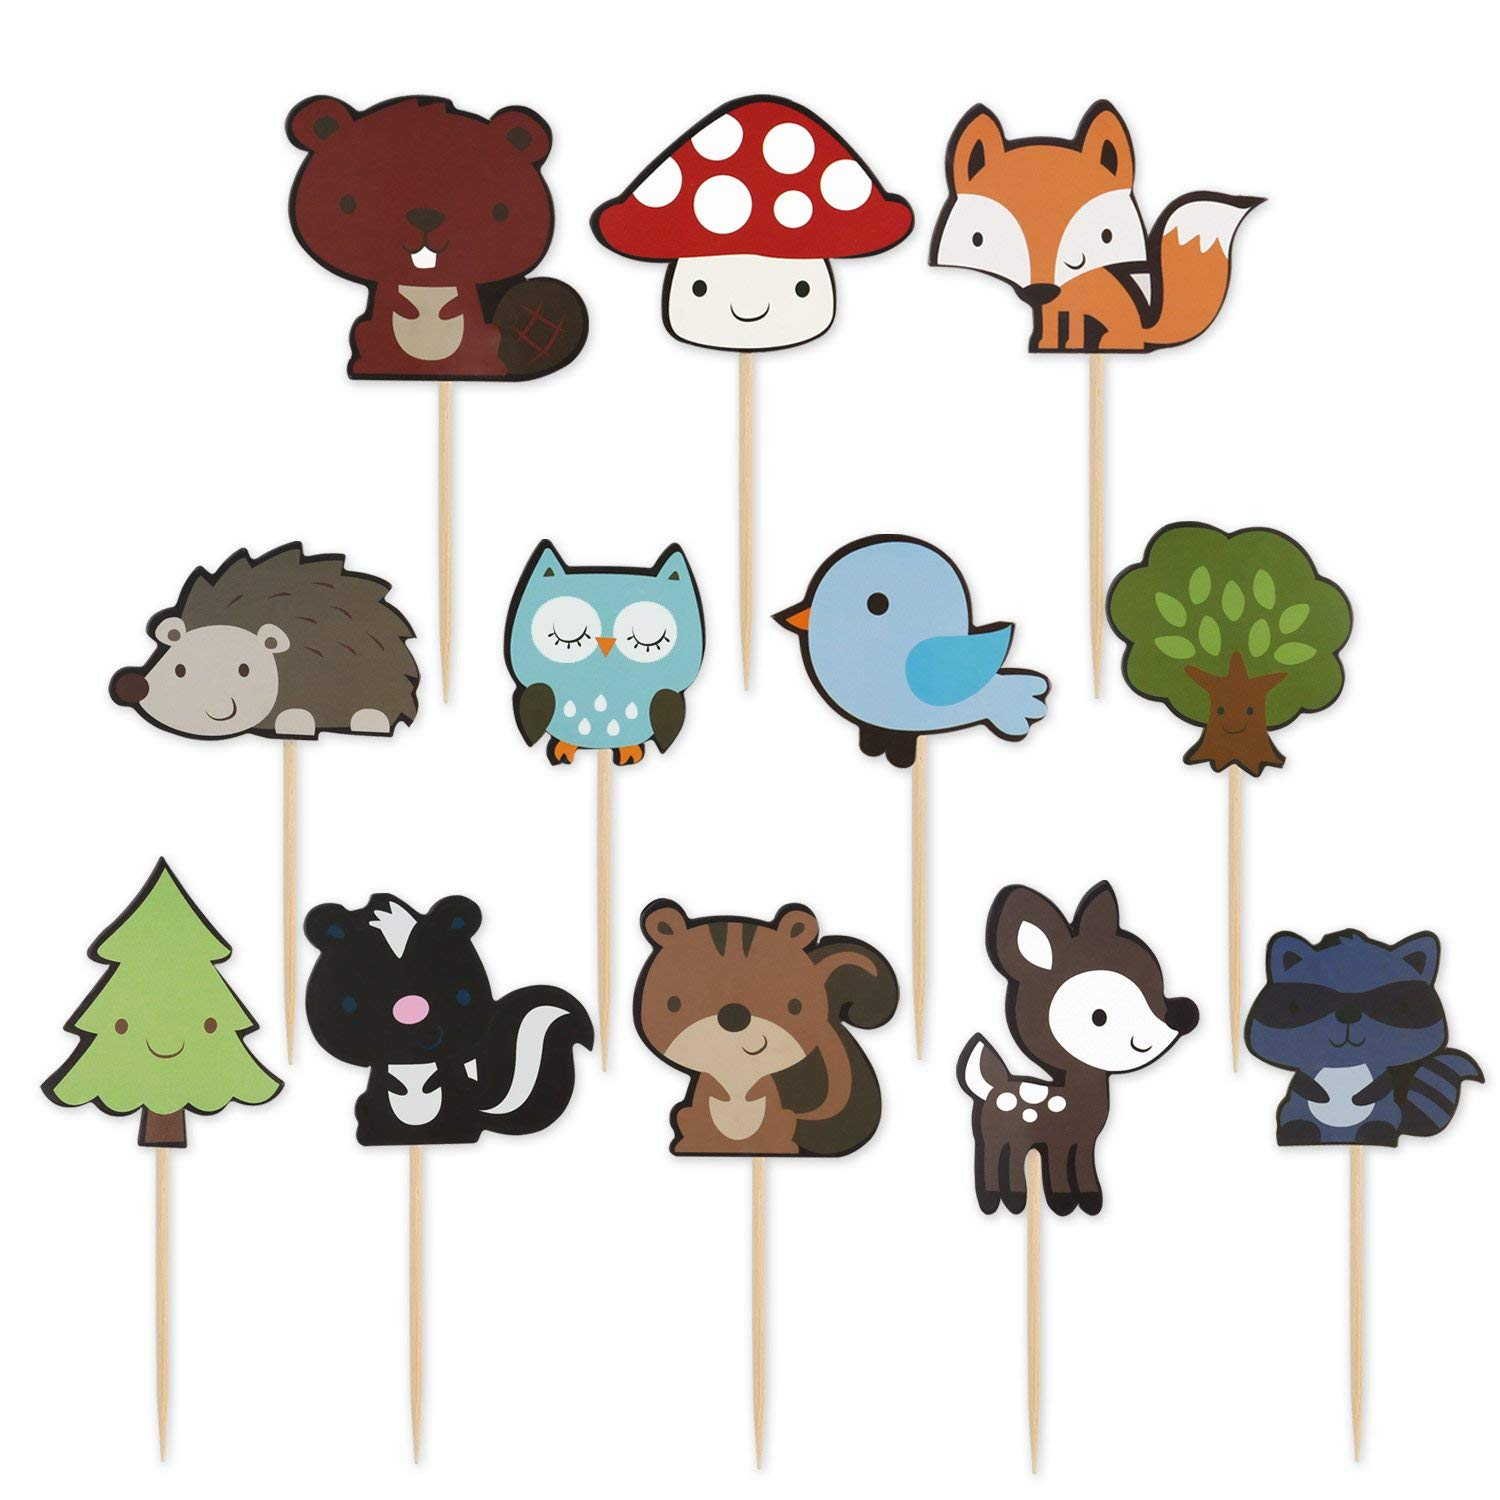 LUTER 48pcs Cute Woodland Creature Cupcake Toppers Jungle Animal Cake Topper Picks Safari Theme Party Decorations Bird Cupcake Topper for Kids